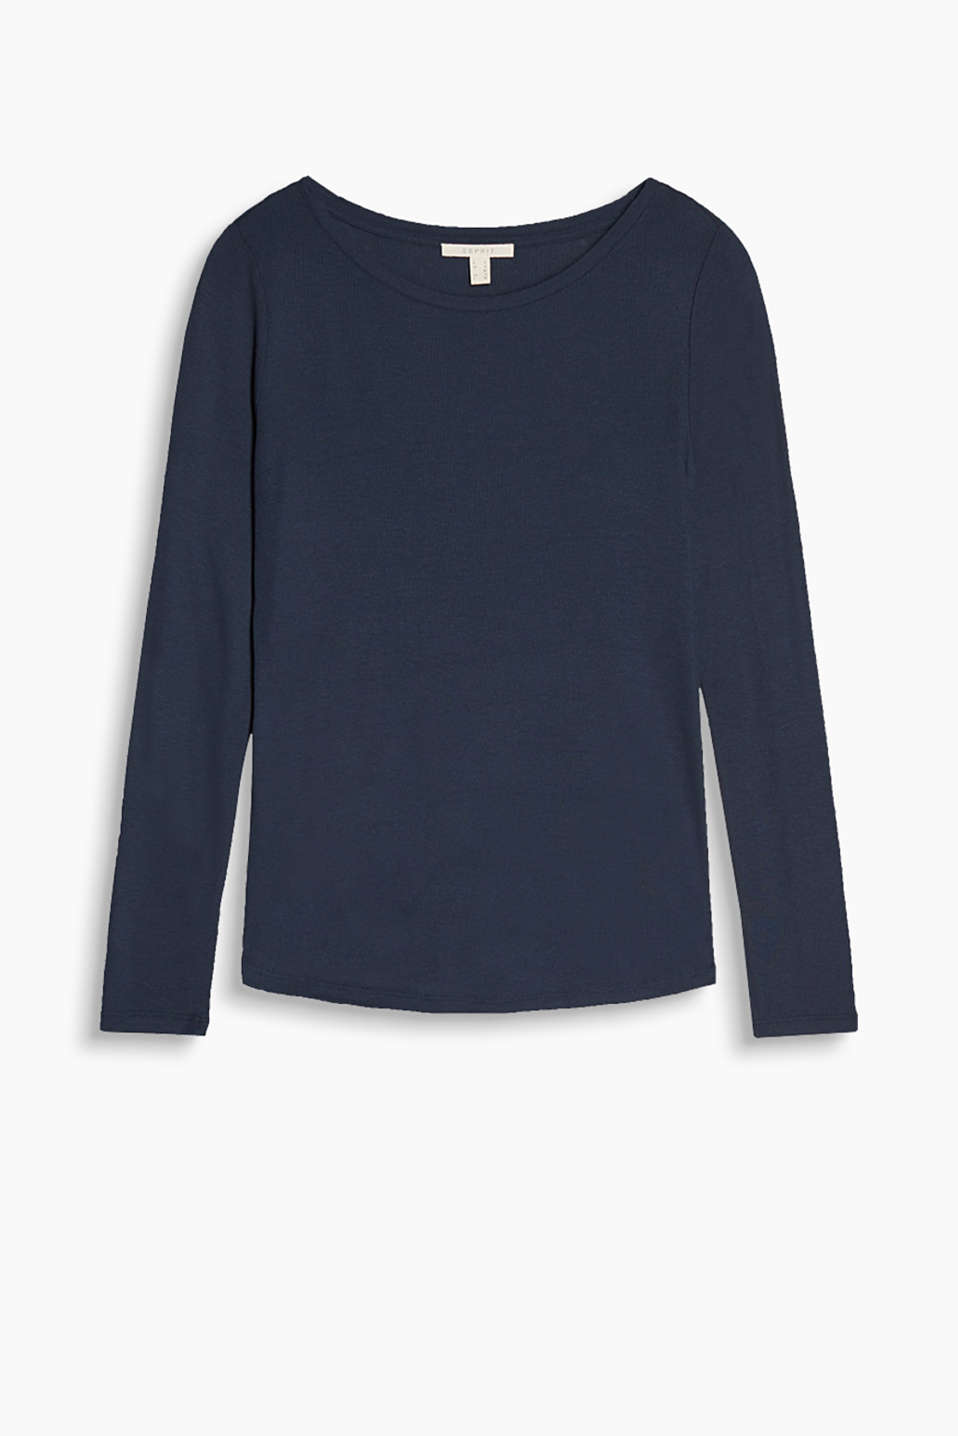 So soft and minimalist - long sleeve top made of finely ribbed jersey